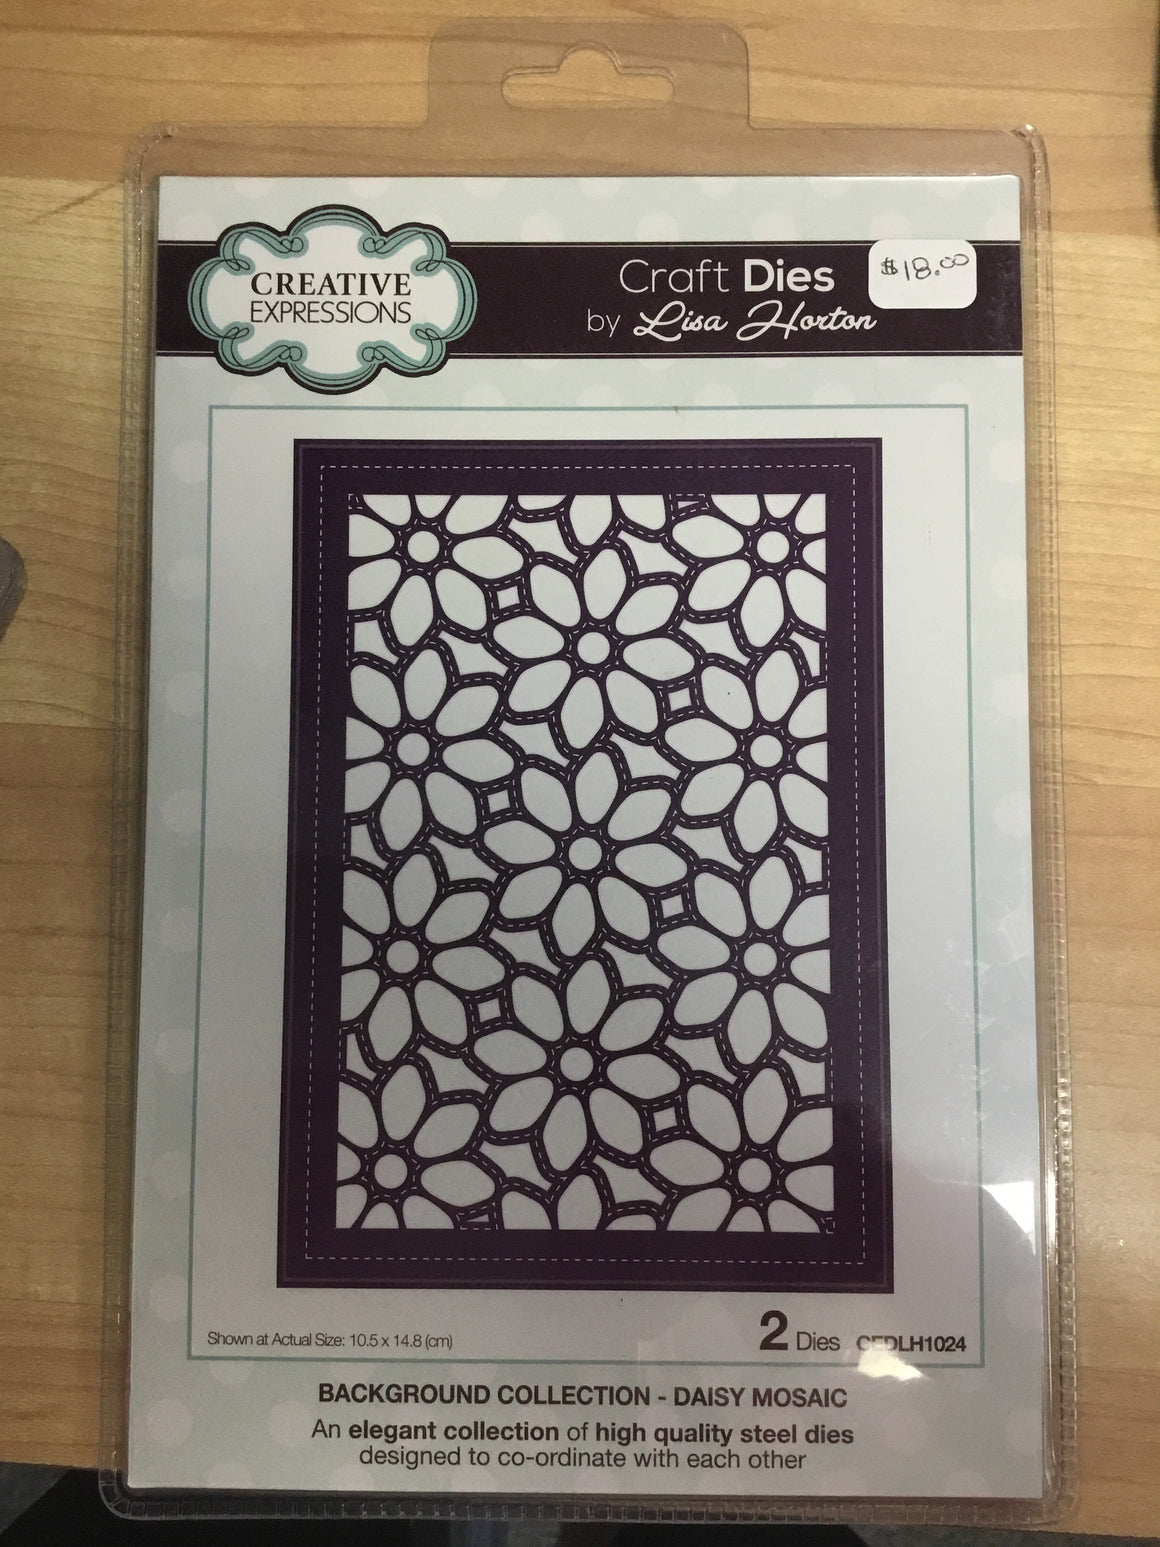 Creative Expressions Craft Dies - background collection daisy mosaic